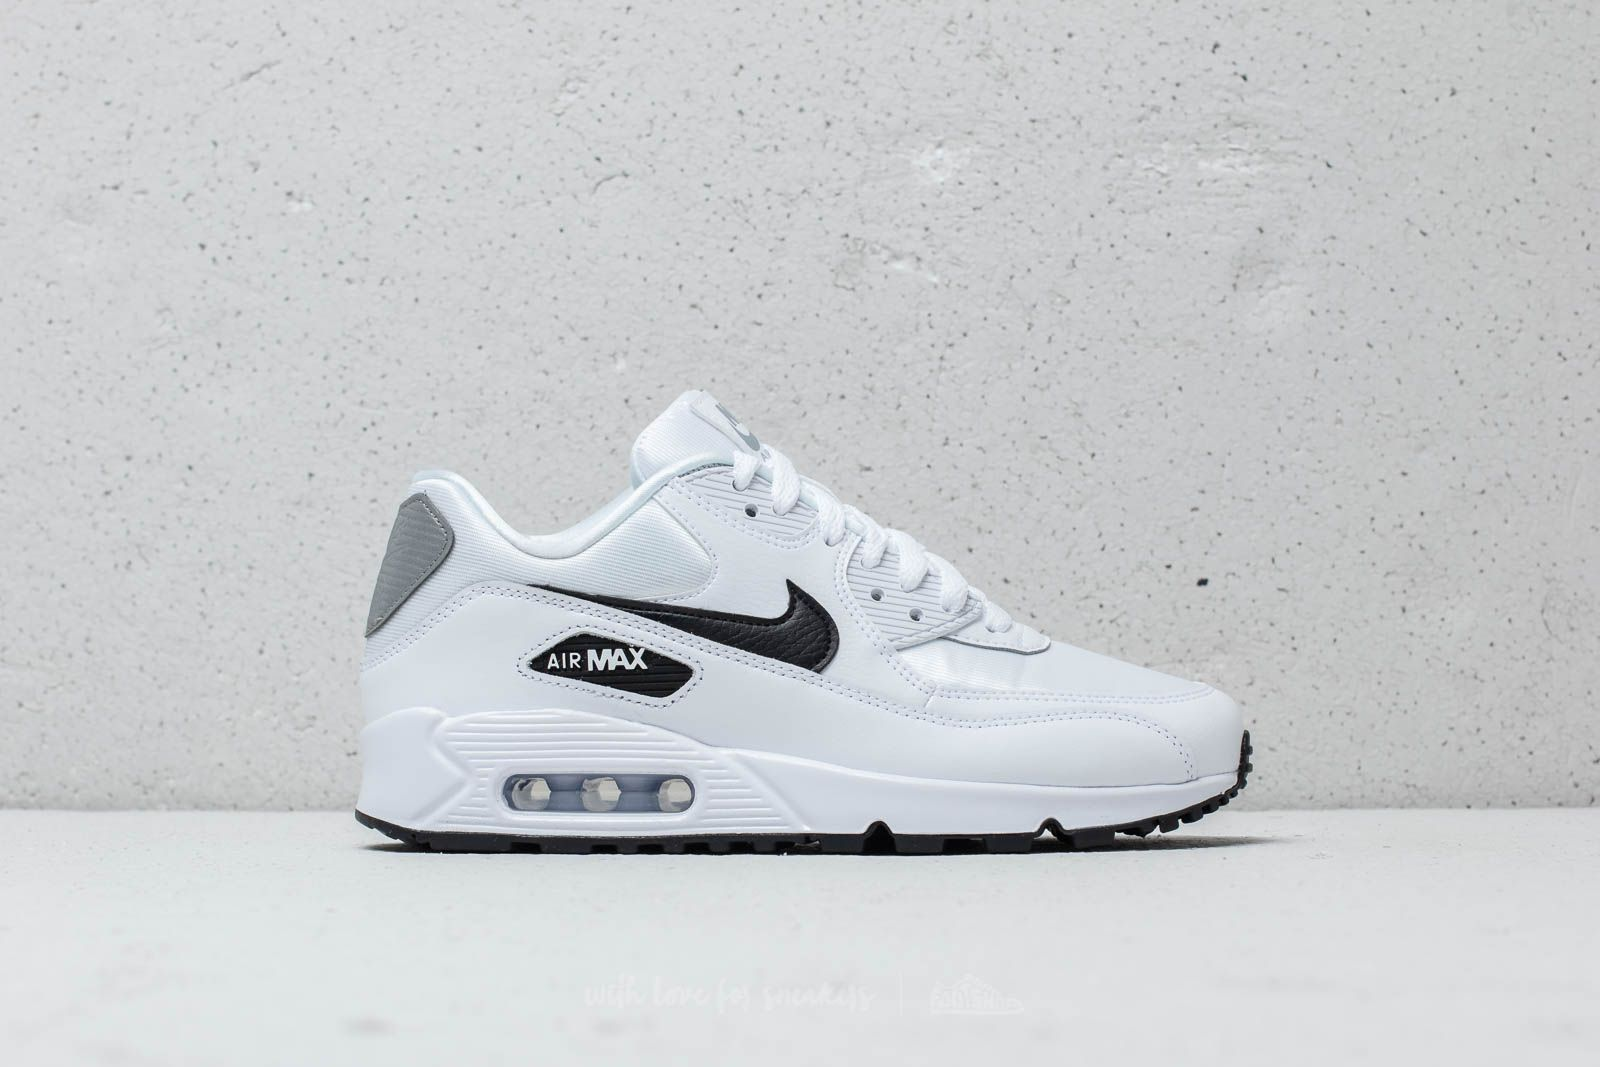 huge discount 831b9 14d94 Nike Wmns Air Max 90 White Black-Reflect Silver at a great price 139